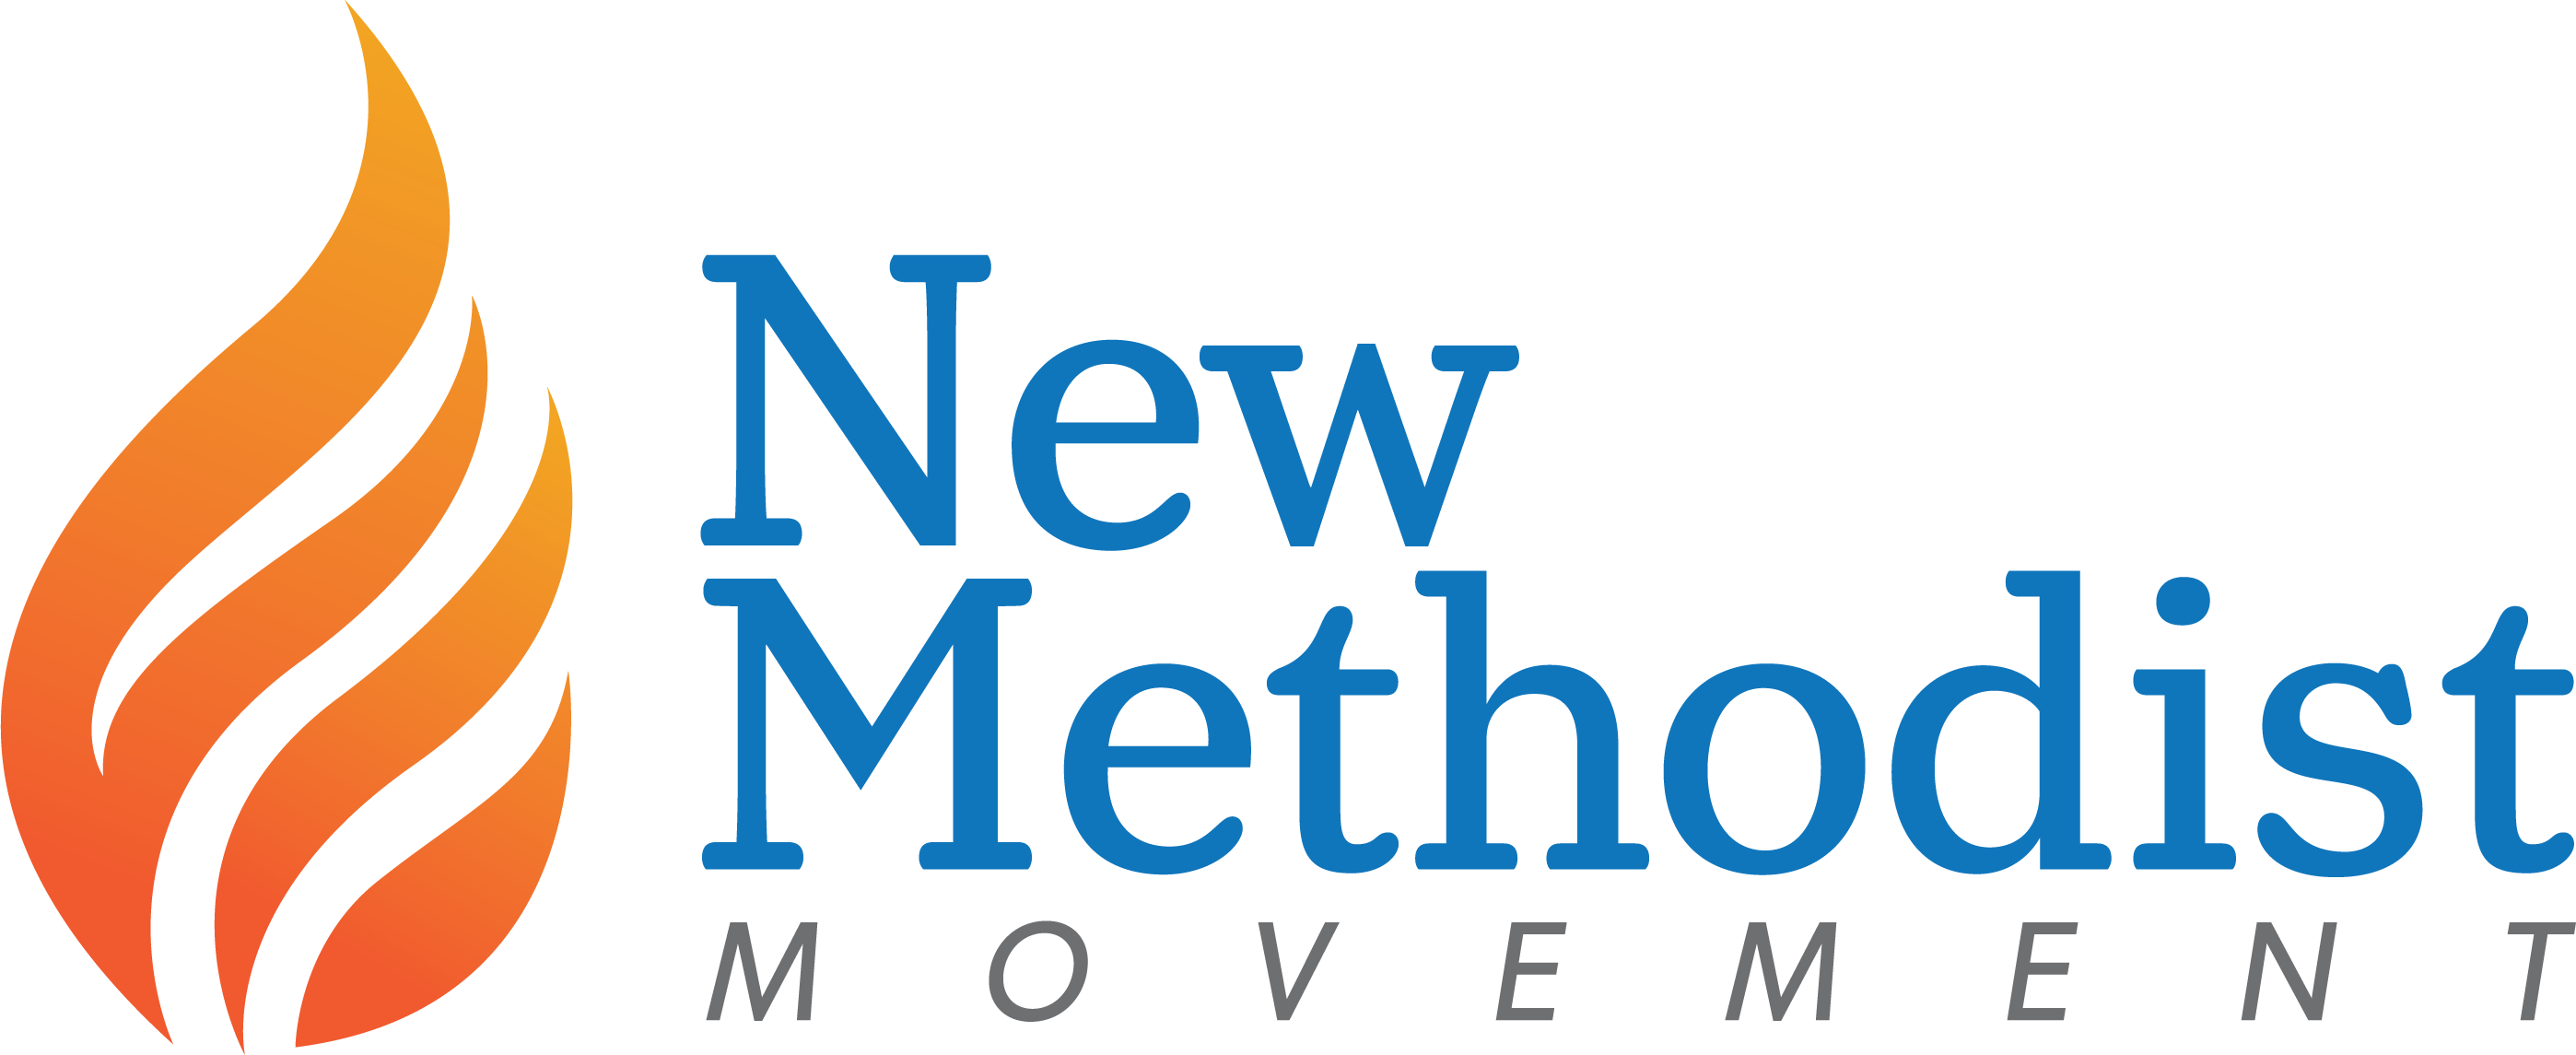 New Methodist Movement